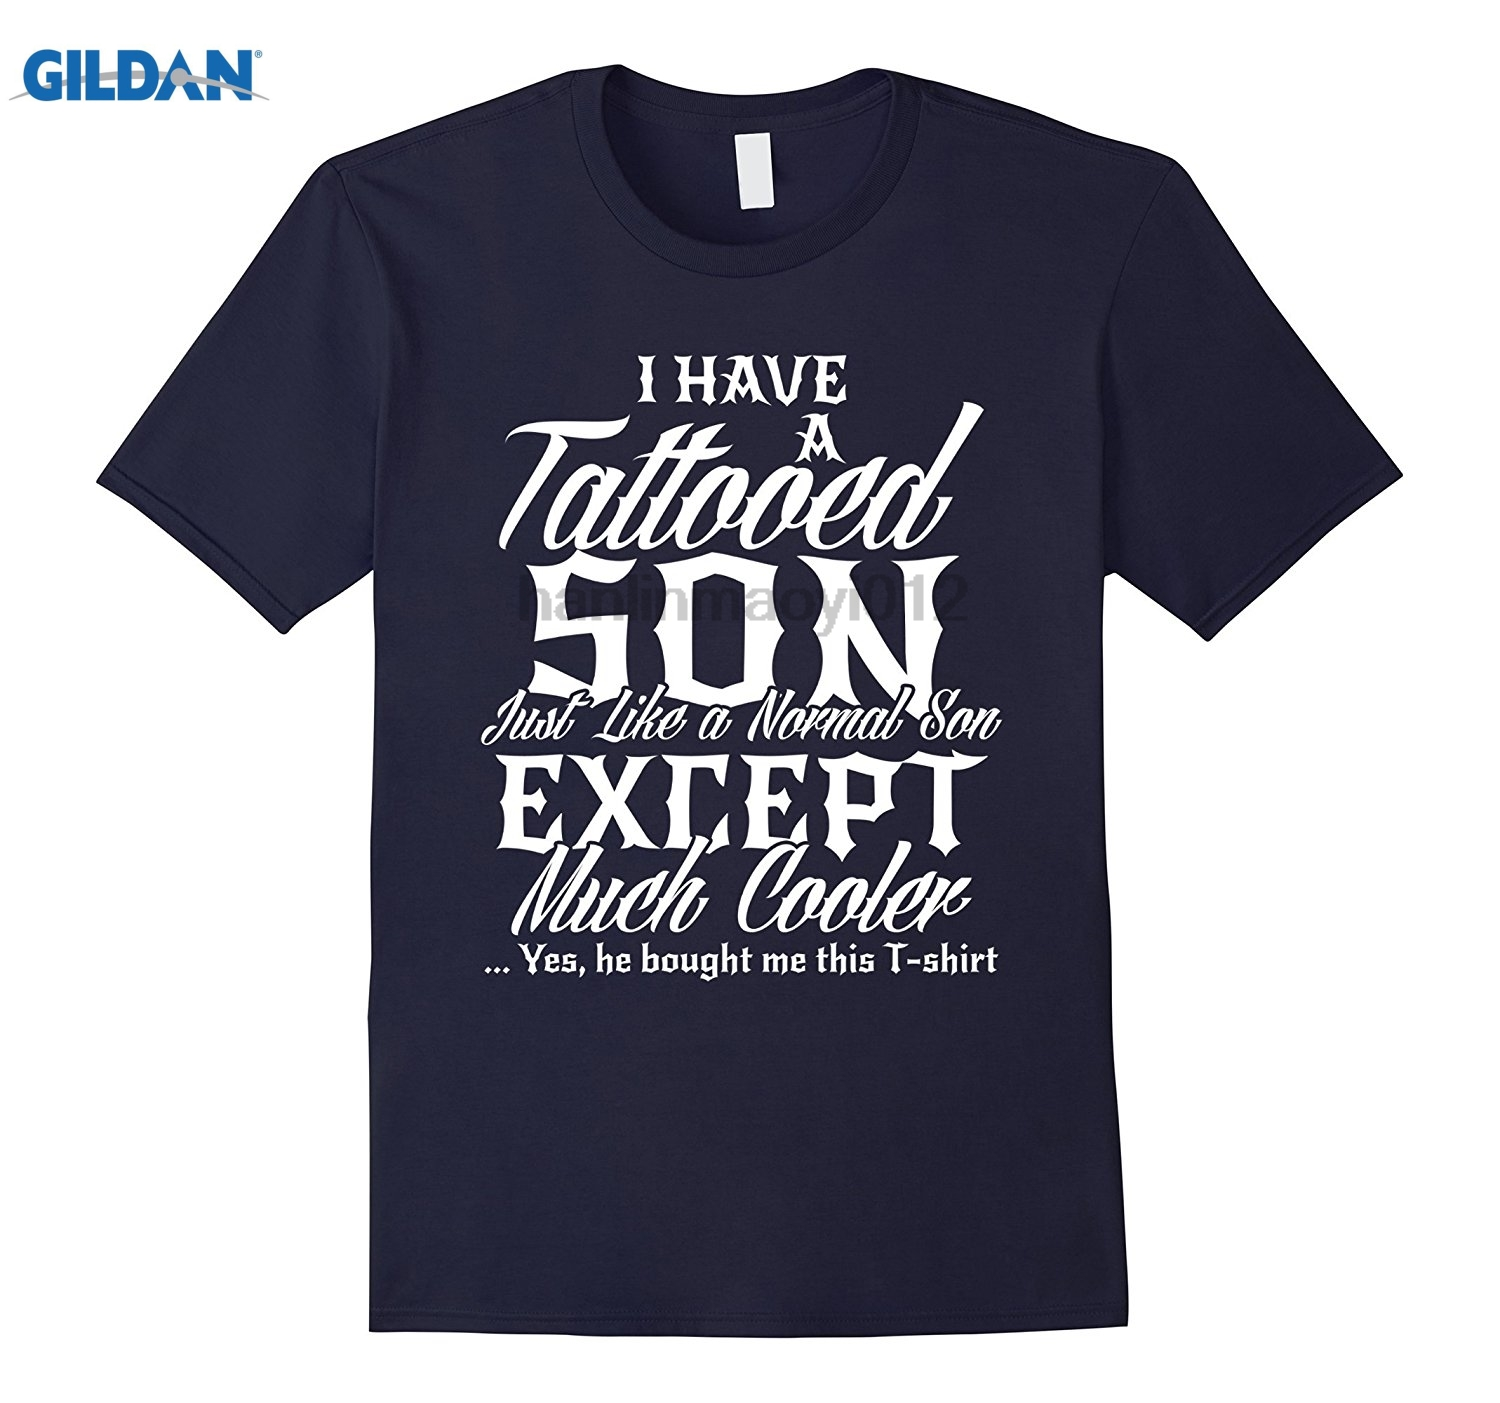 GILDAN Mens I Have a Tattooed Son Daddy Dad Papa Fathers Day Gift Shirt Hot Womens T-shi ...